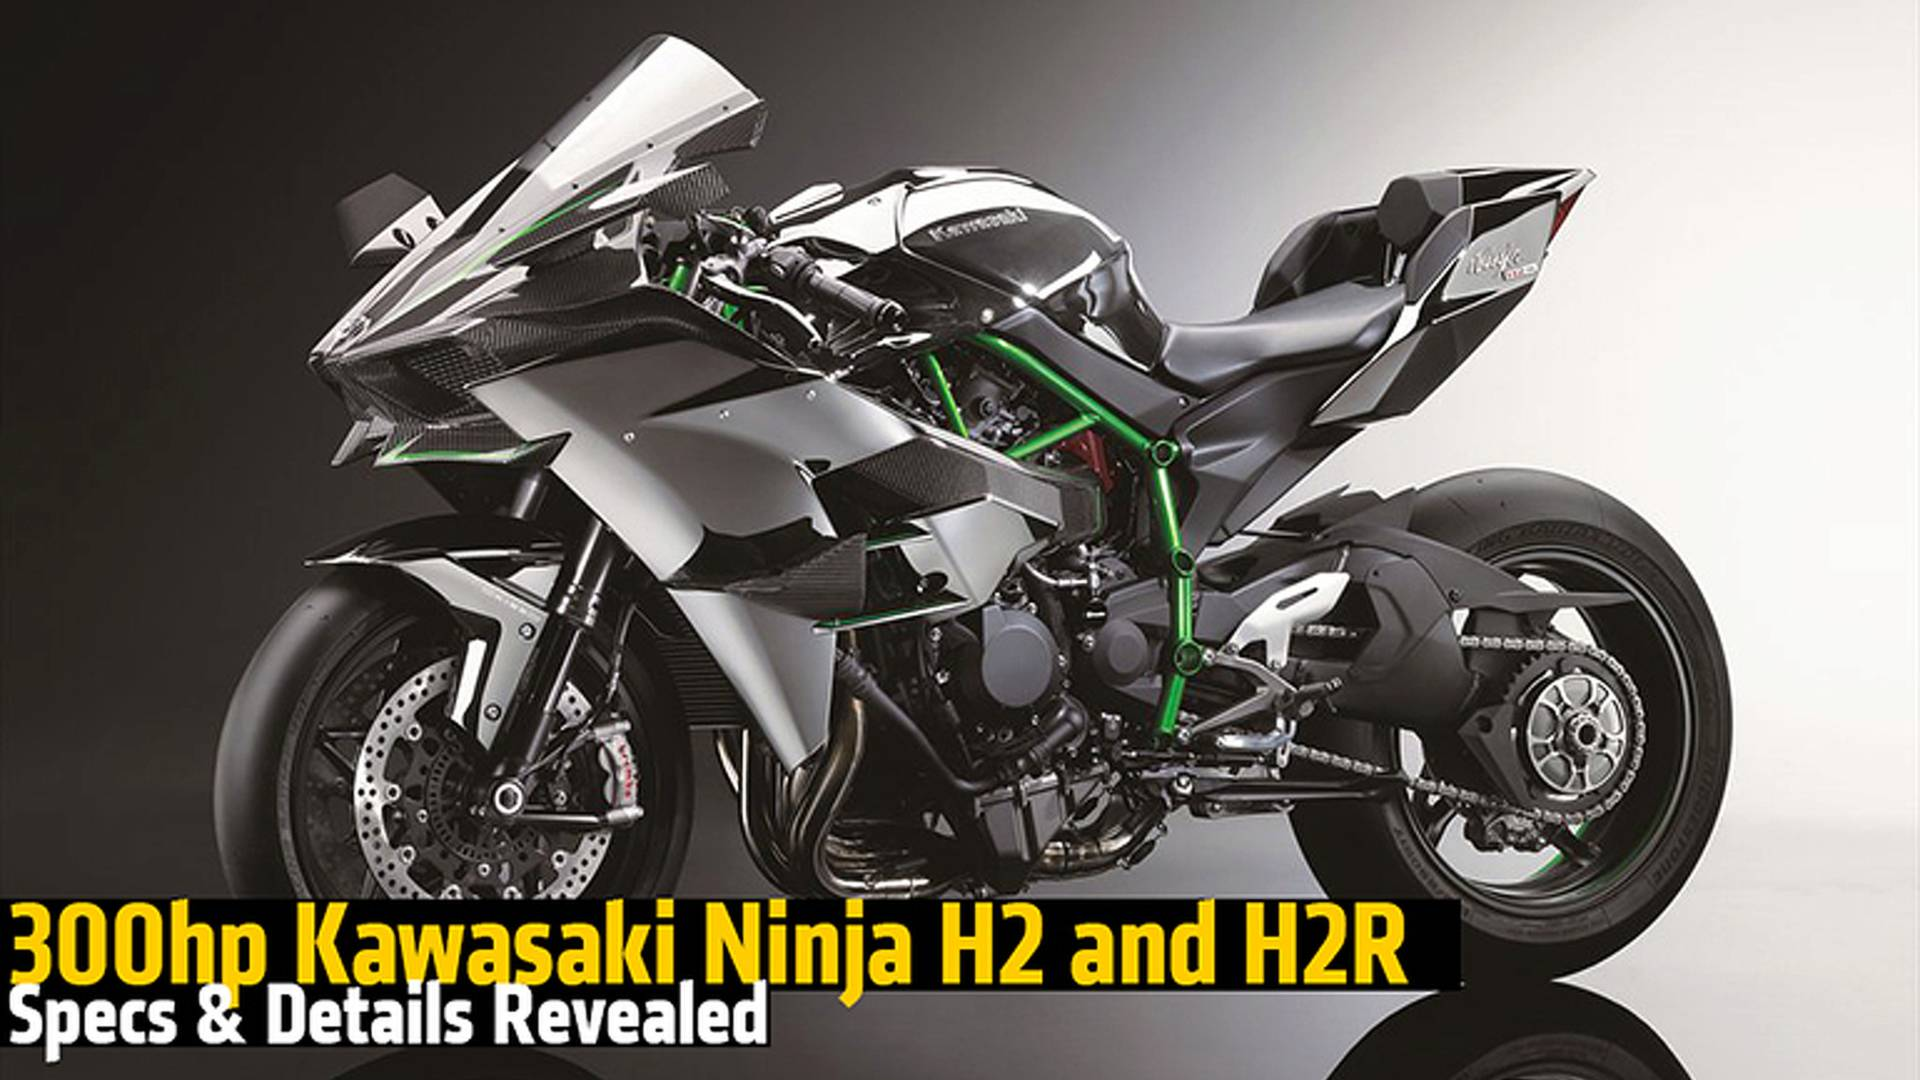 300hp Kawasaki Ninja H2 and H2R Specs & Details Revealed